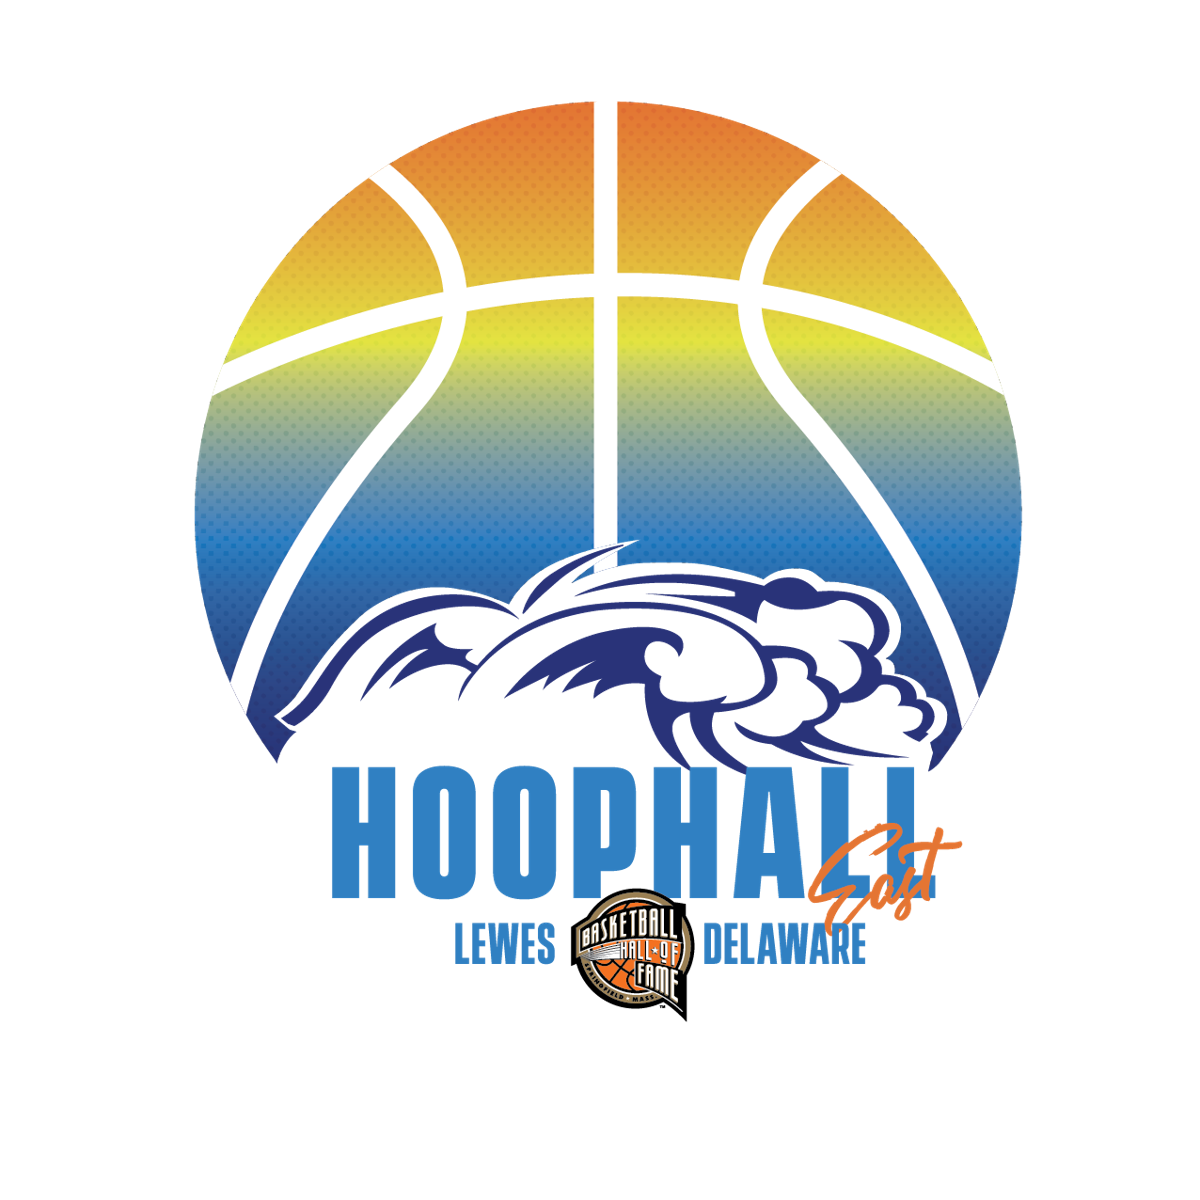 Hoophall East